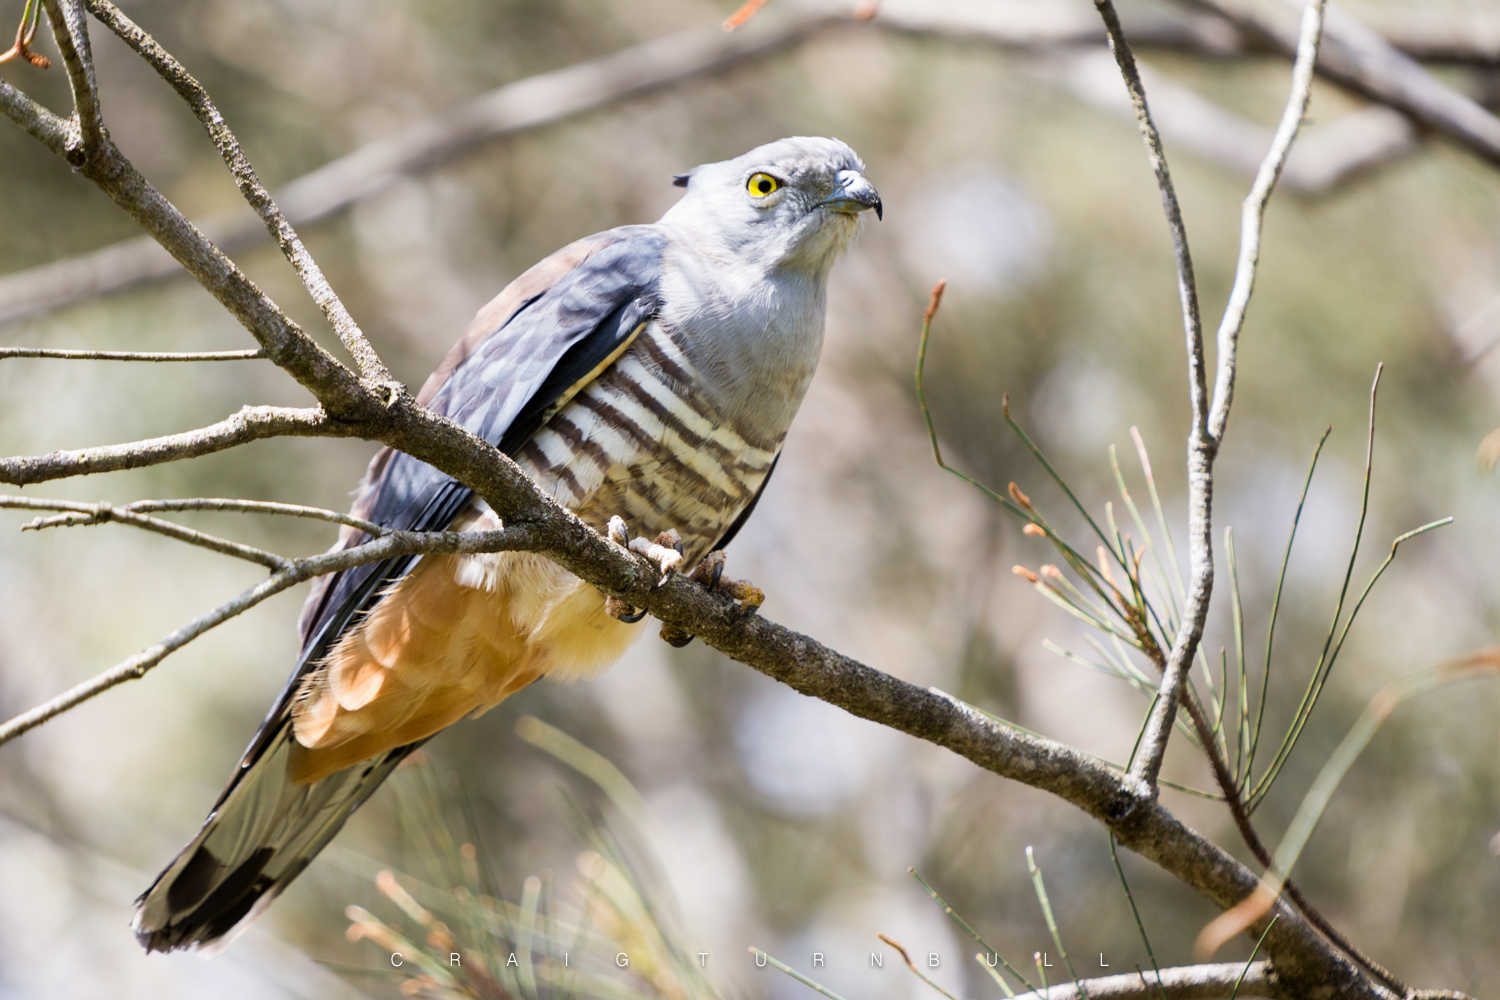 Pacific Baza - (Crested Hawk) Was hiding in a tree and trying to fend off myna birds attacking it.